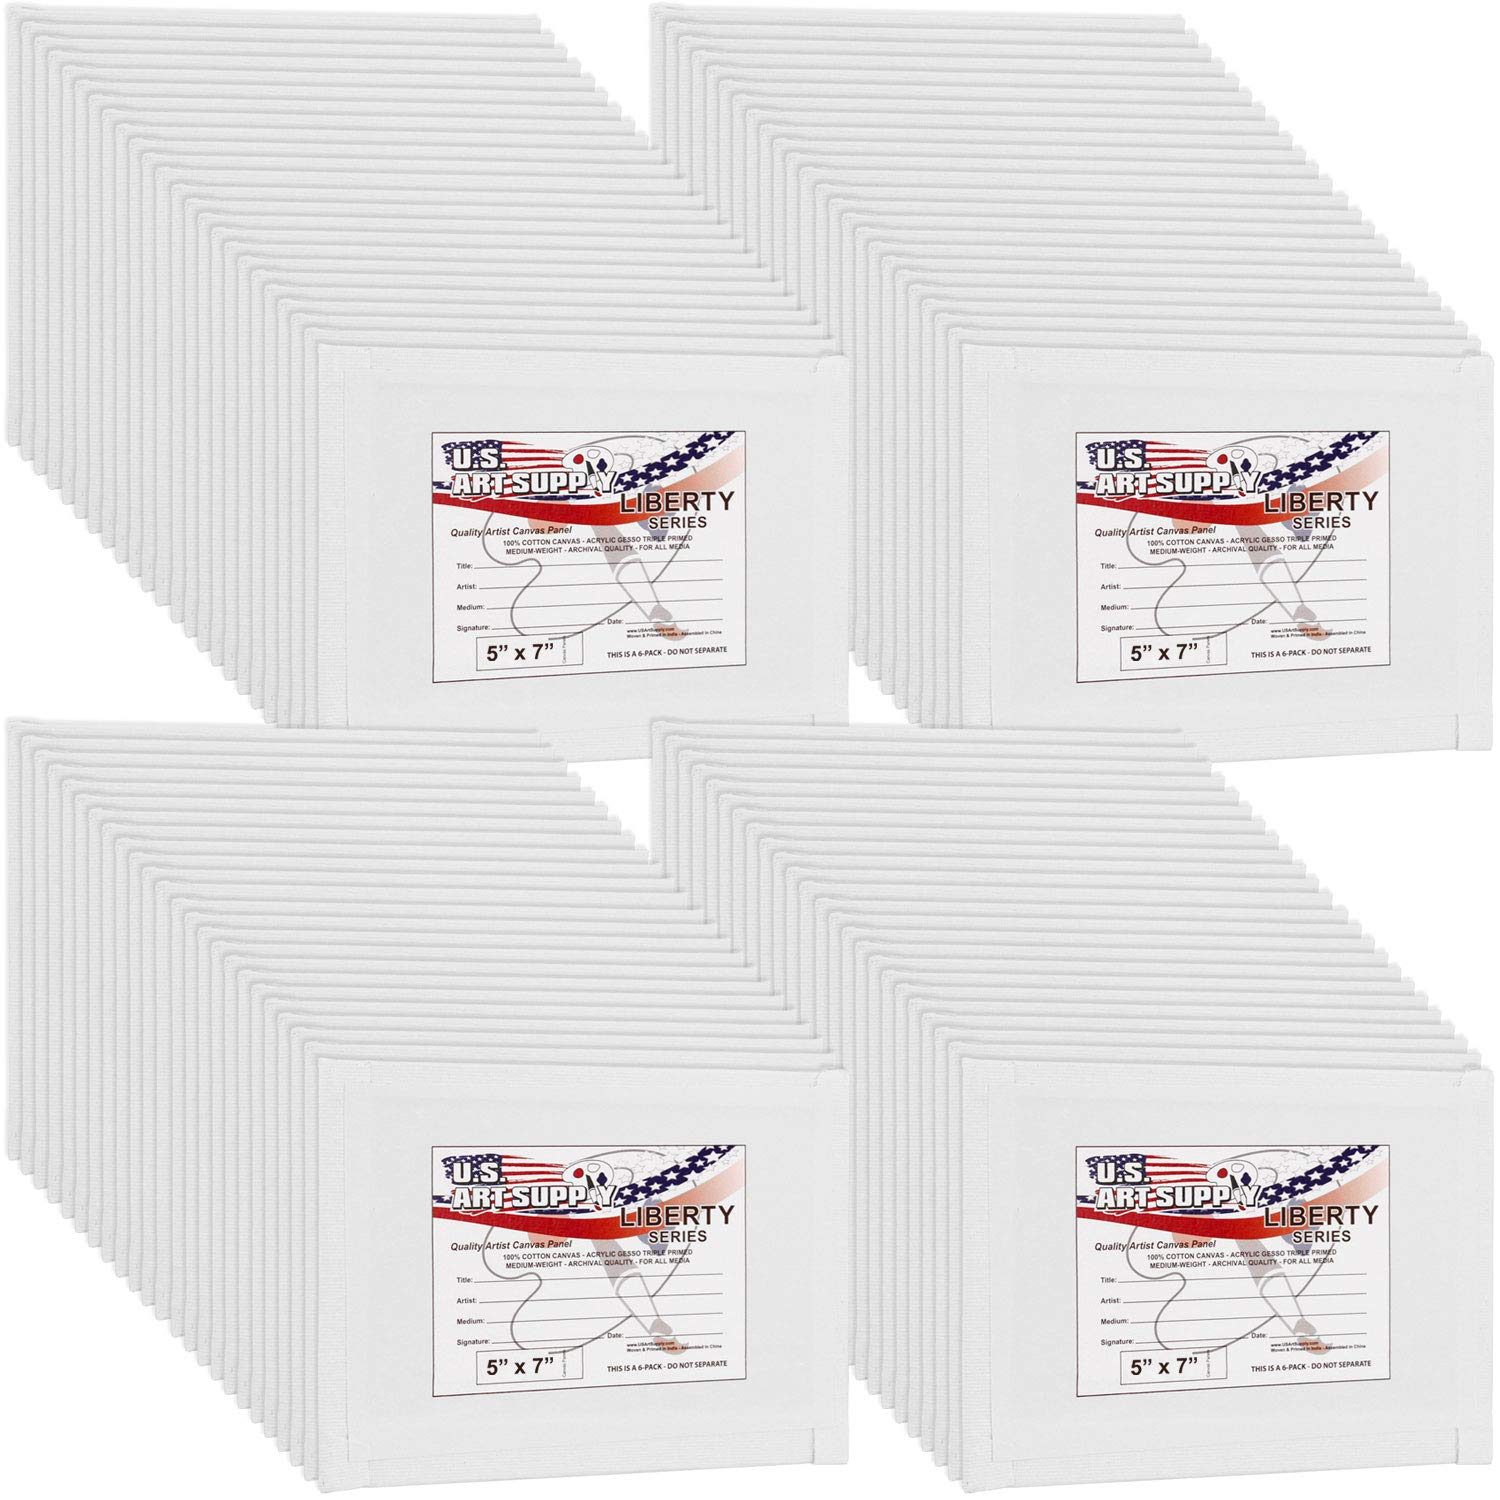 US Art Supply 5 X 7 inch Professional Artist Quality Acid Free Canvas Panels 8-12-Packs (1 Full Case of 96 Single Canvas Panels) by US Art Supply